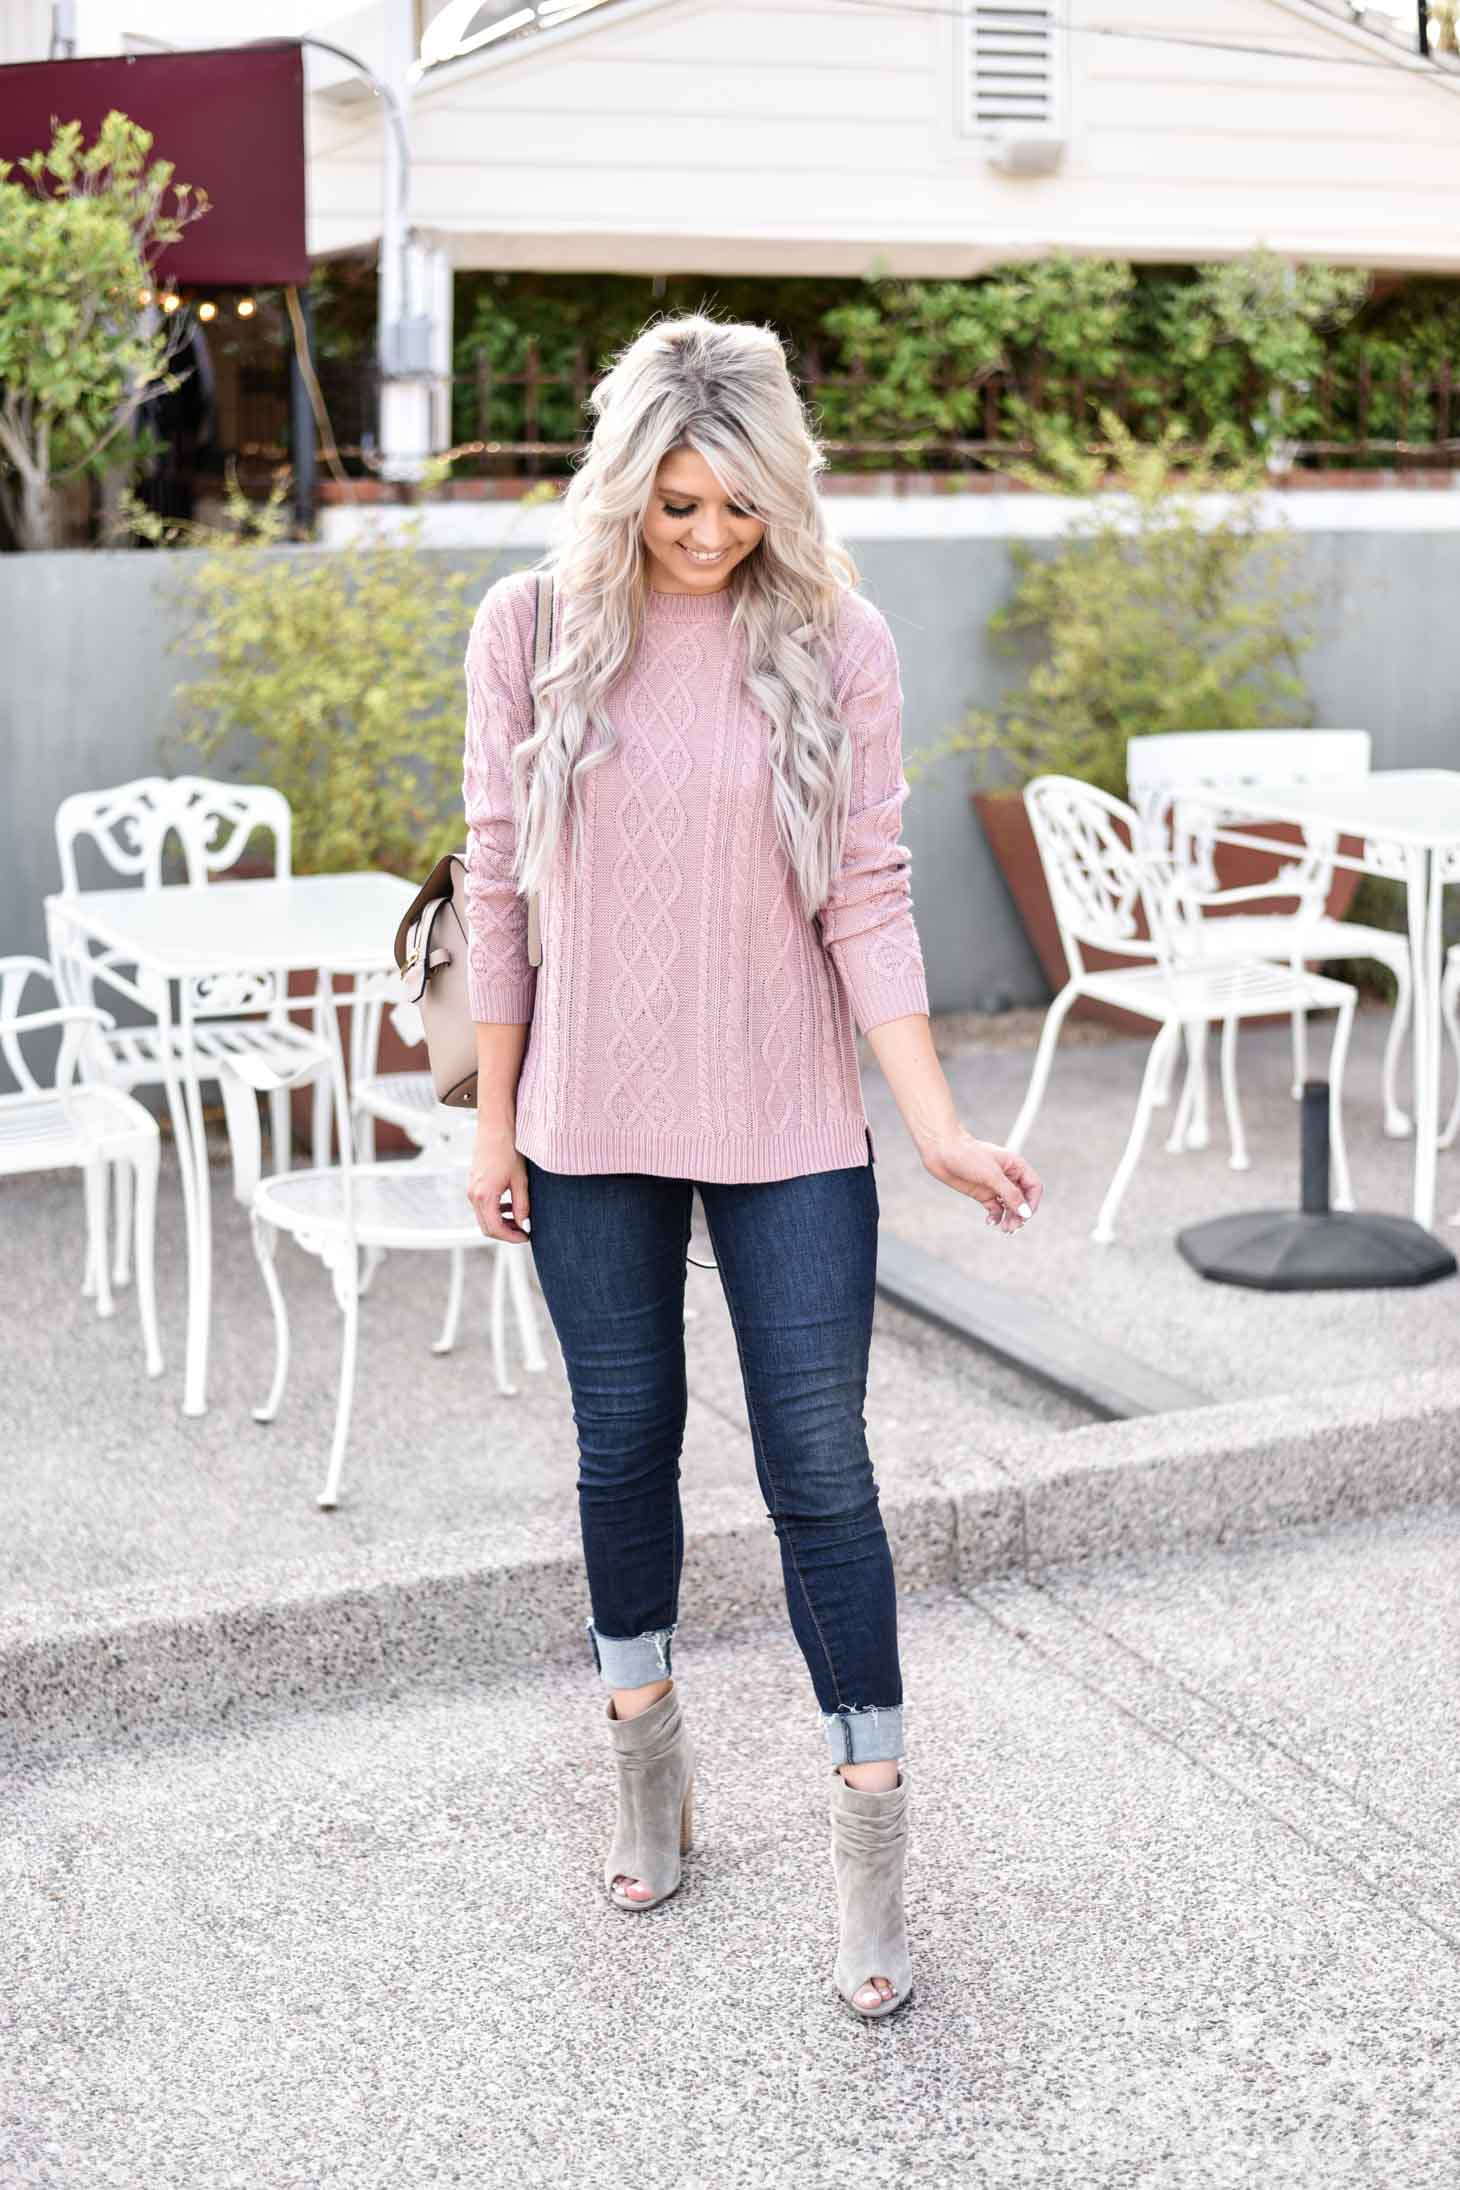 Erin Elizabeth of Wink and a Twirl shares the perfect sweater for your Fall wardrobe from Magnolia Boutique